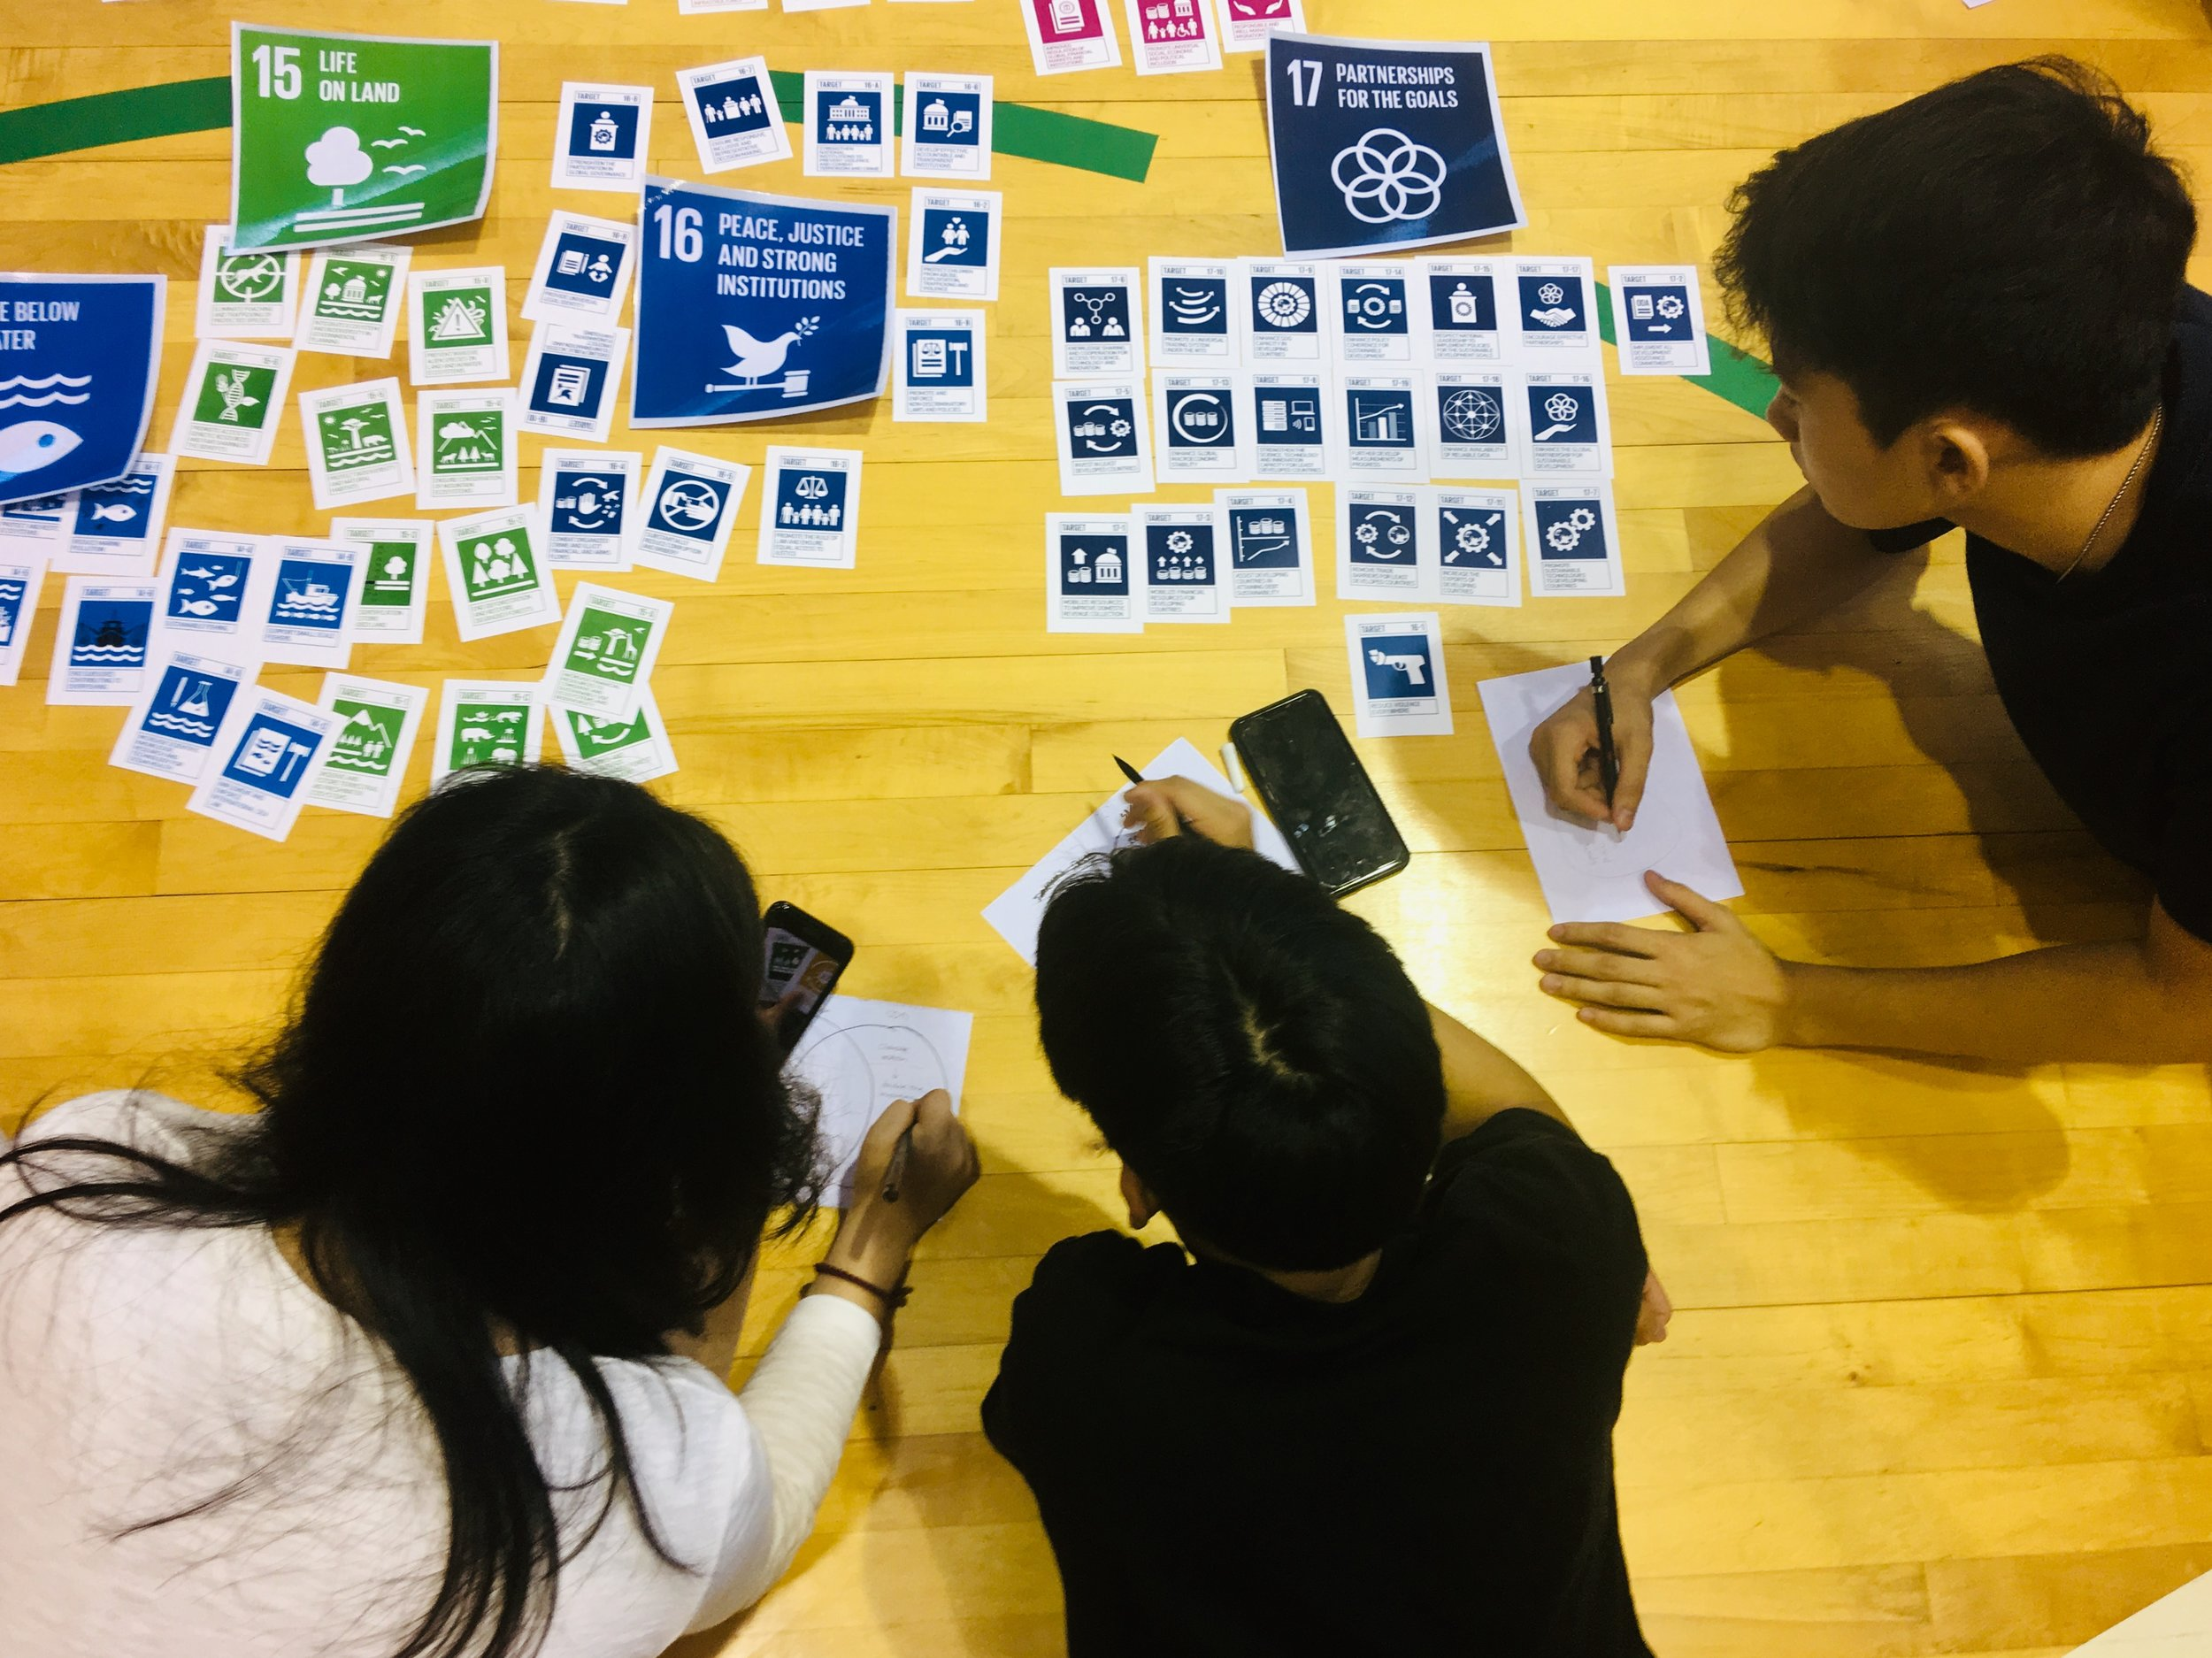 UN SDG Target s can be great for pinpointing community engagement and impact on a DW trip